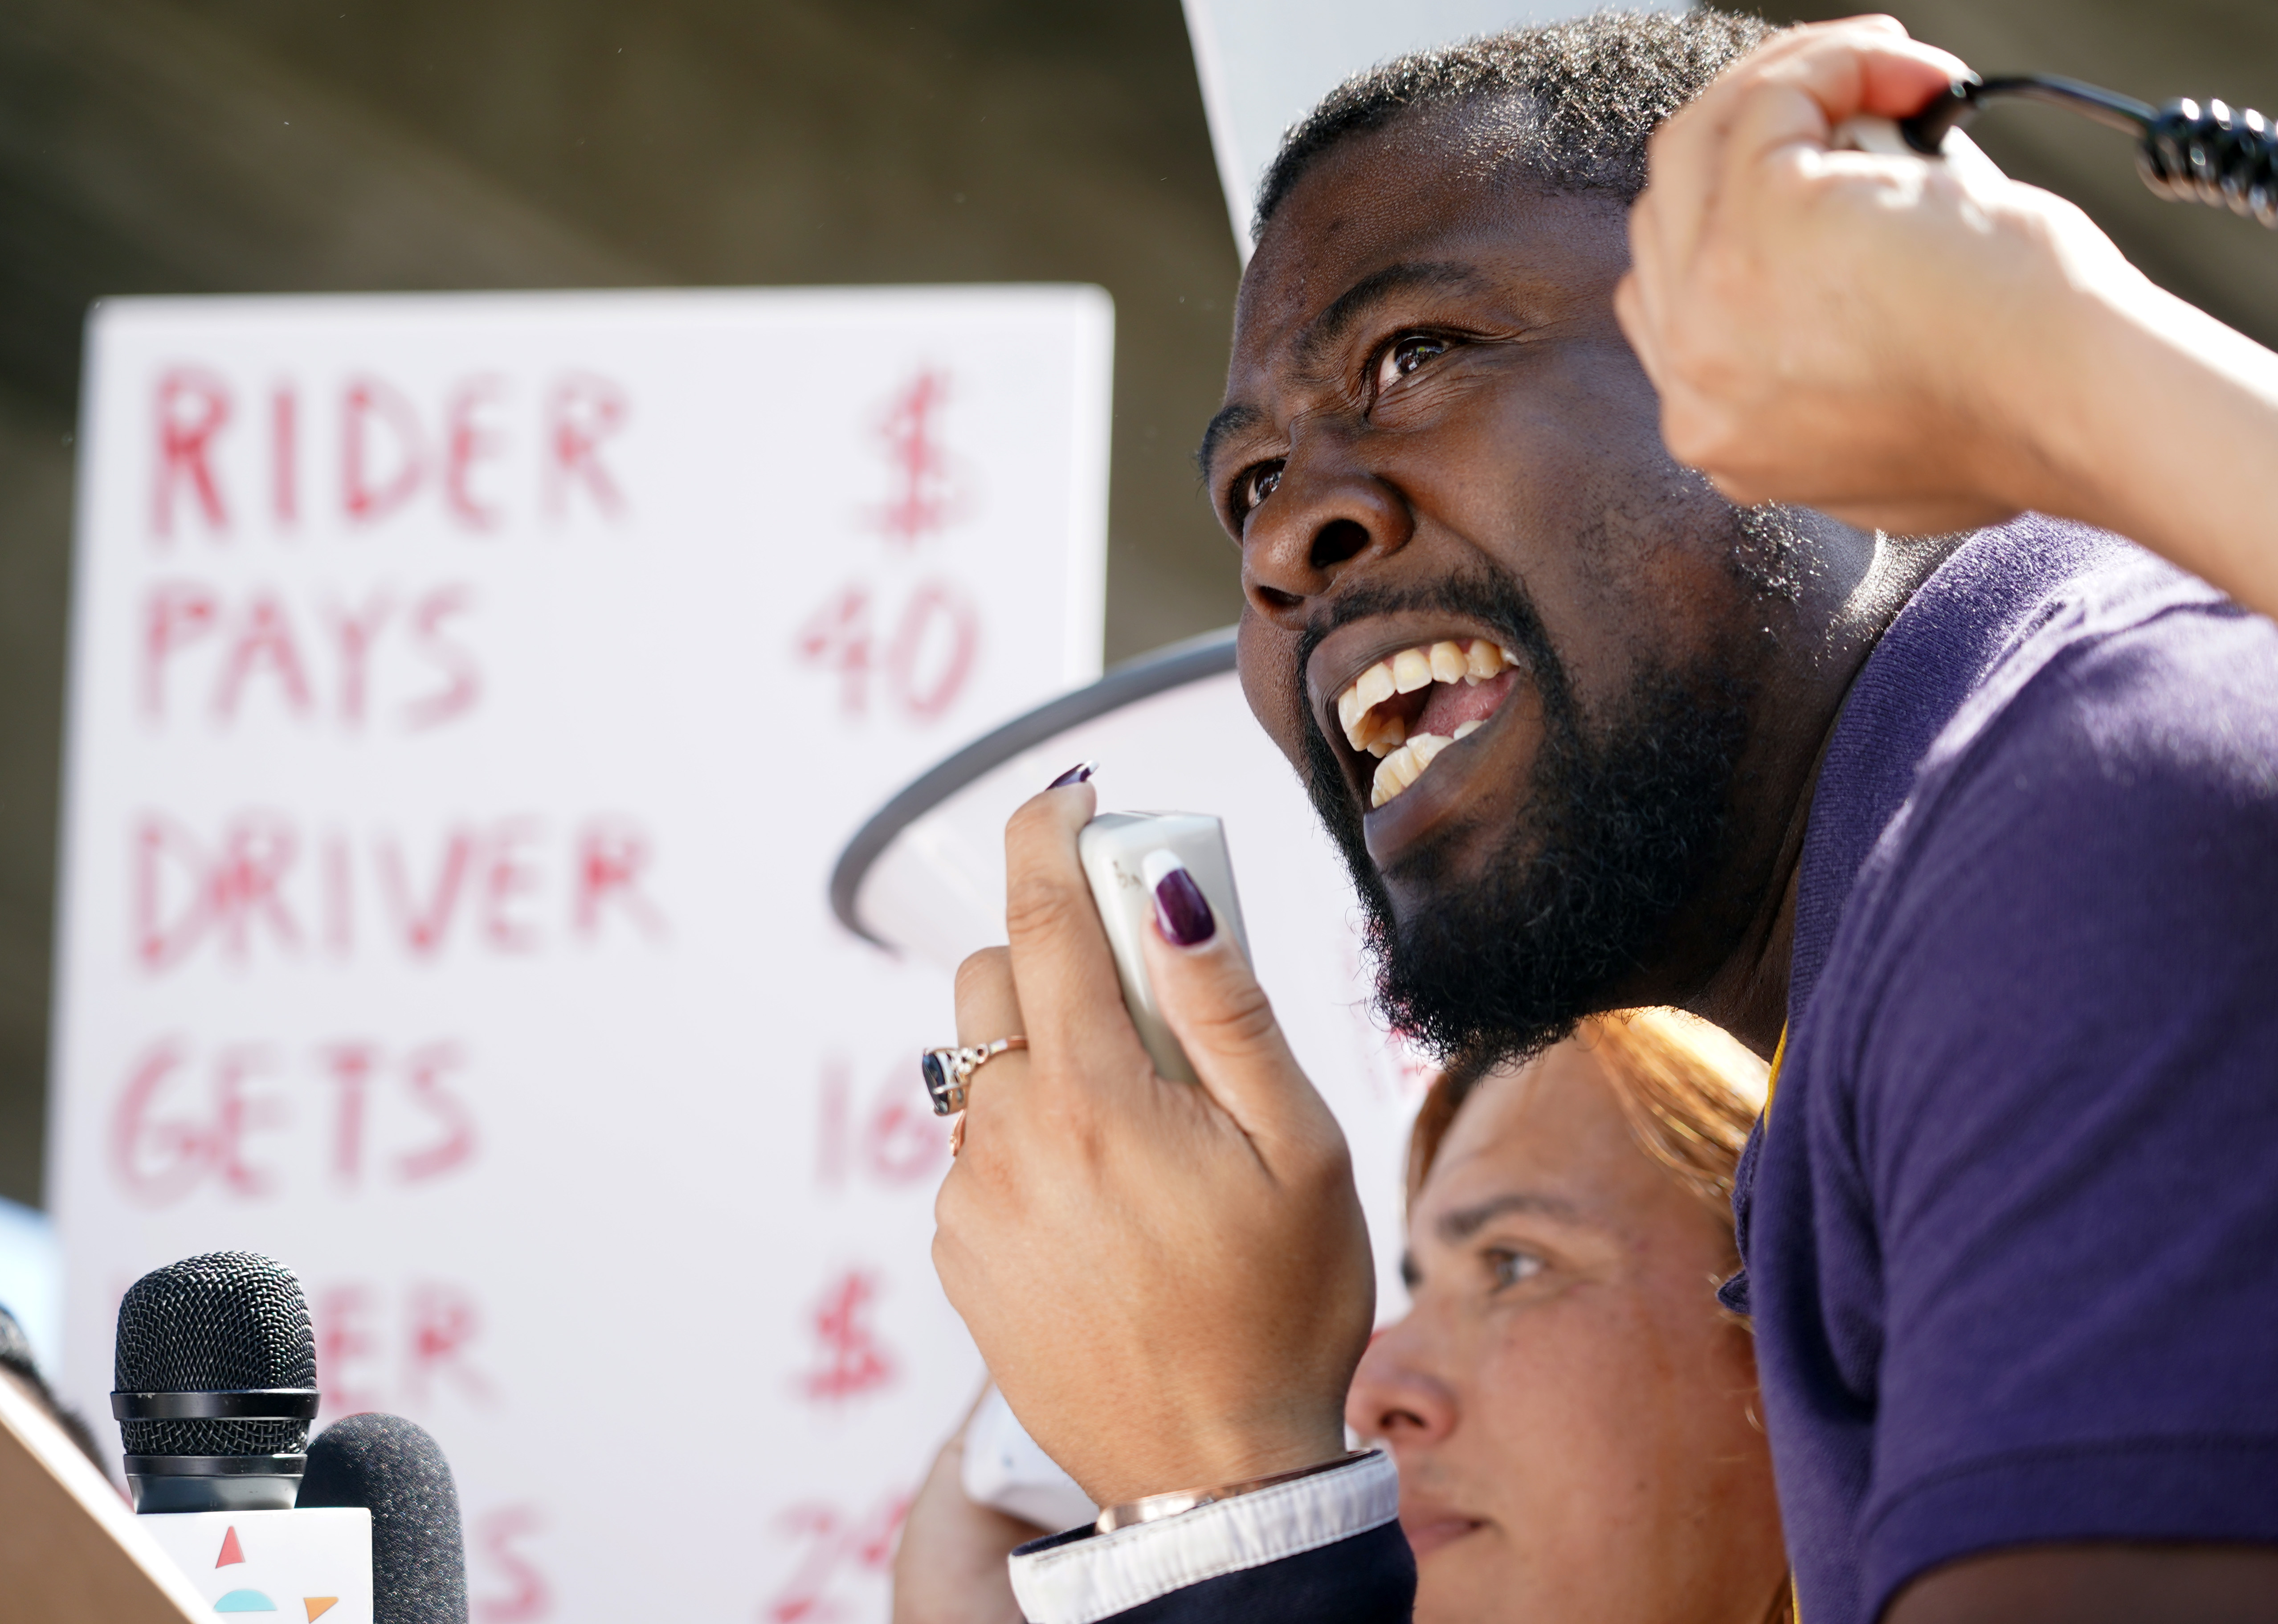 Uber driver James Hicks speaks about his income struggles during a one-day strike against Uber and Lyft in front of an Uber office on Marine Avenue in Redondo Beach on Monday, Mar 25, 2019.